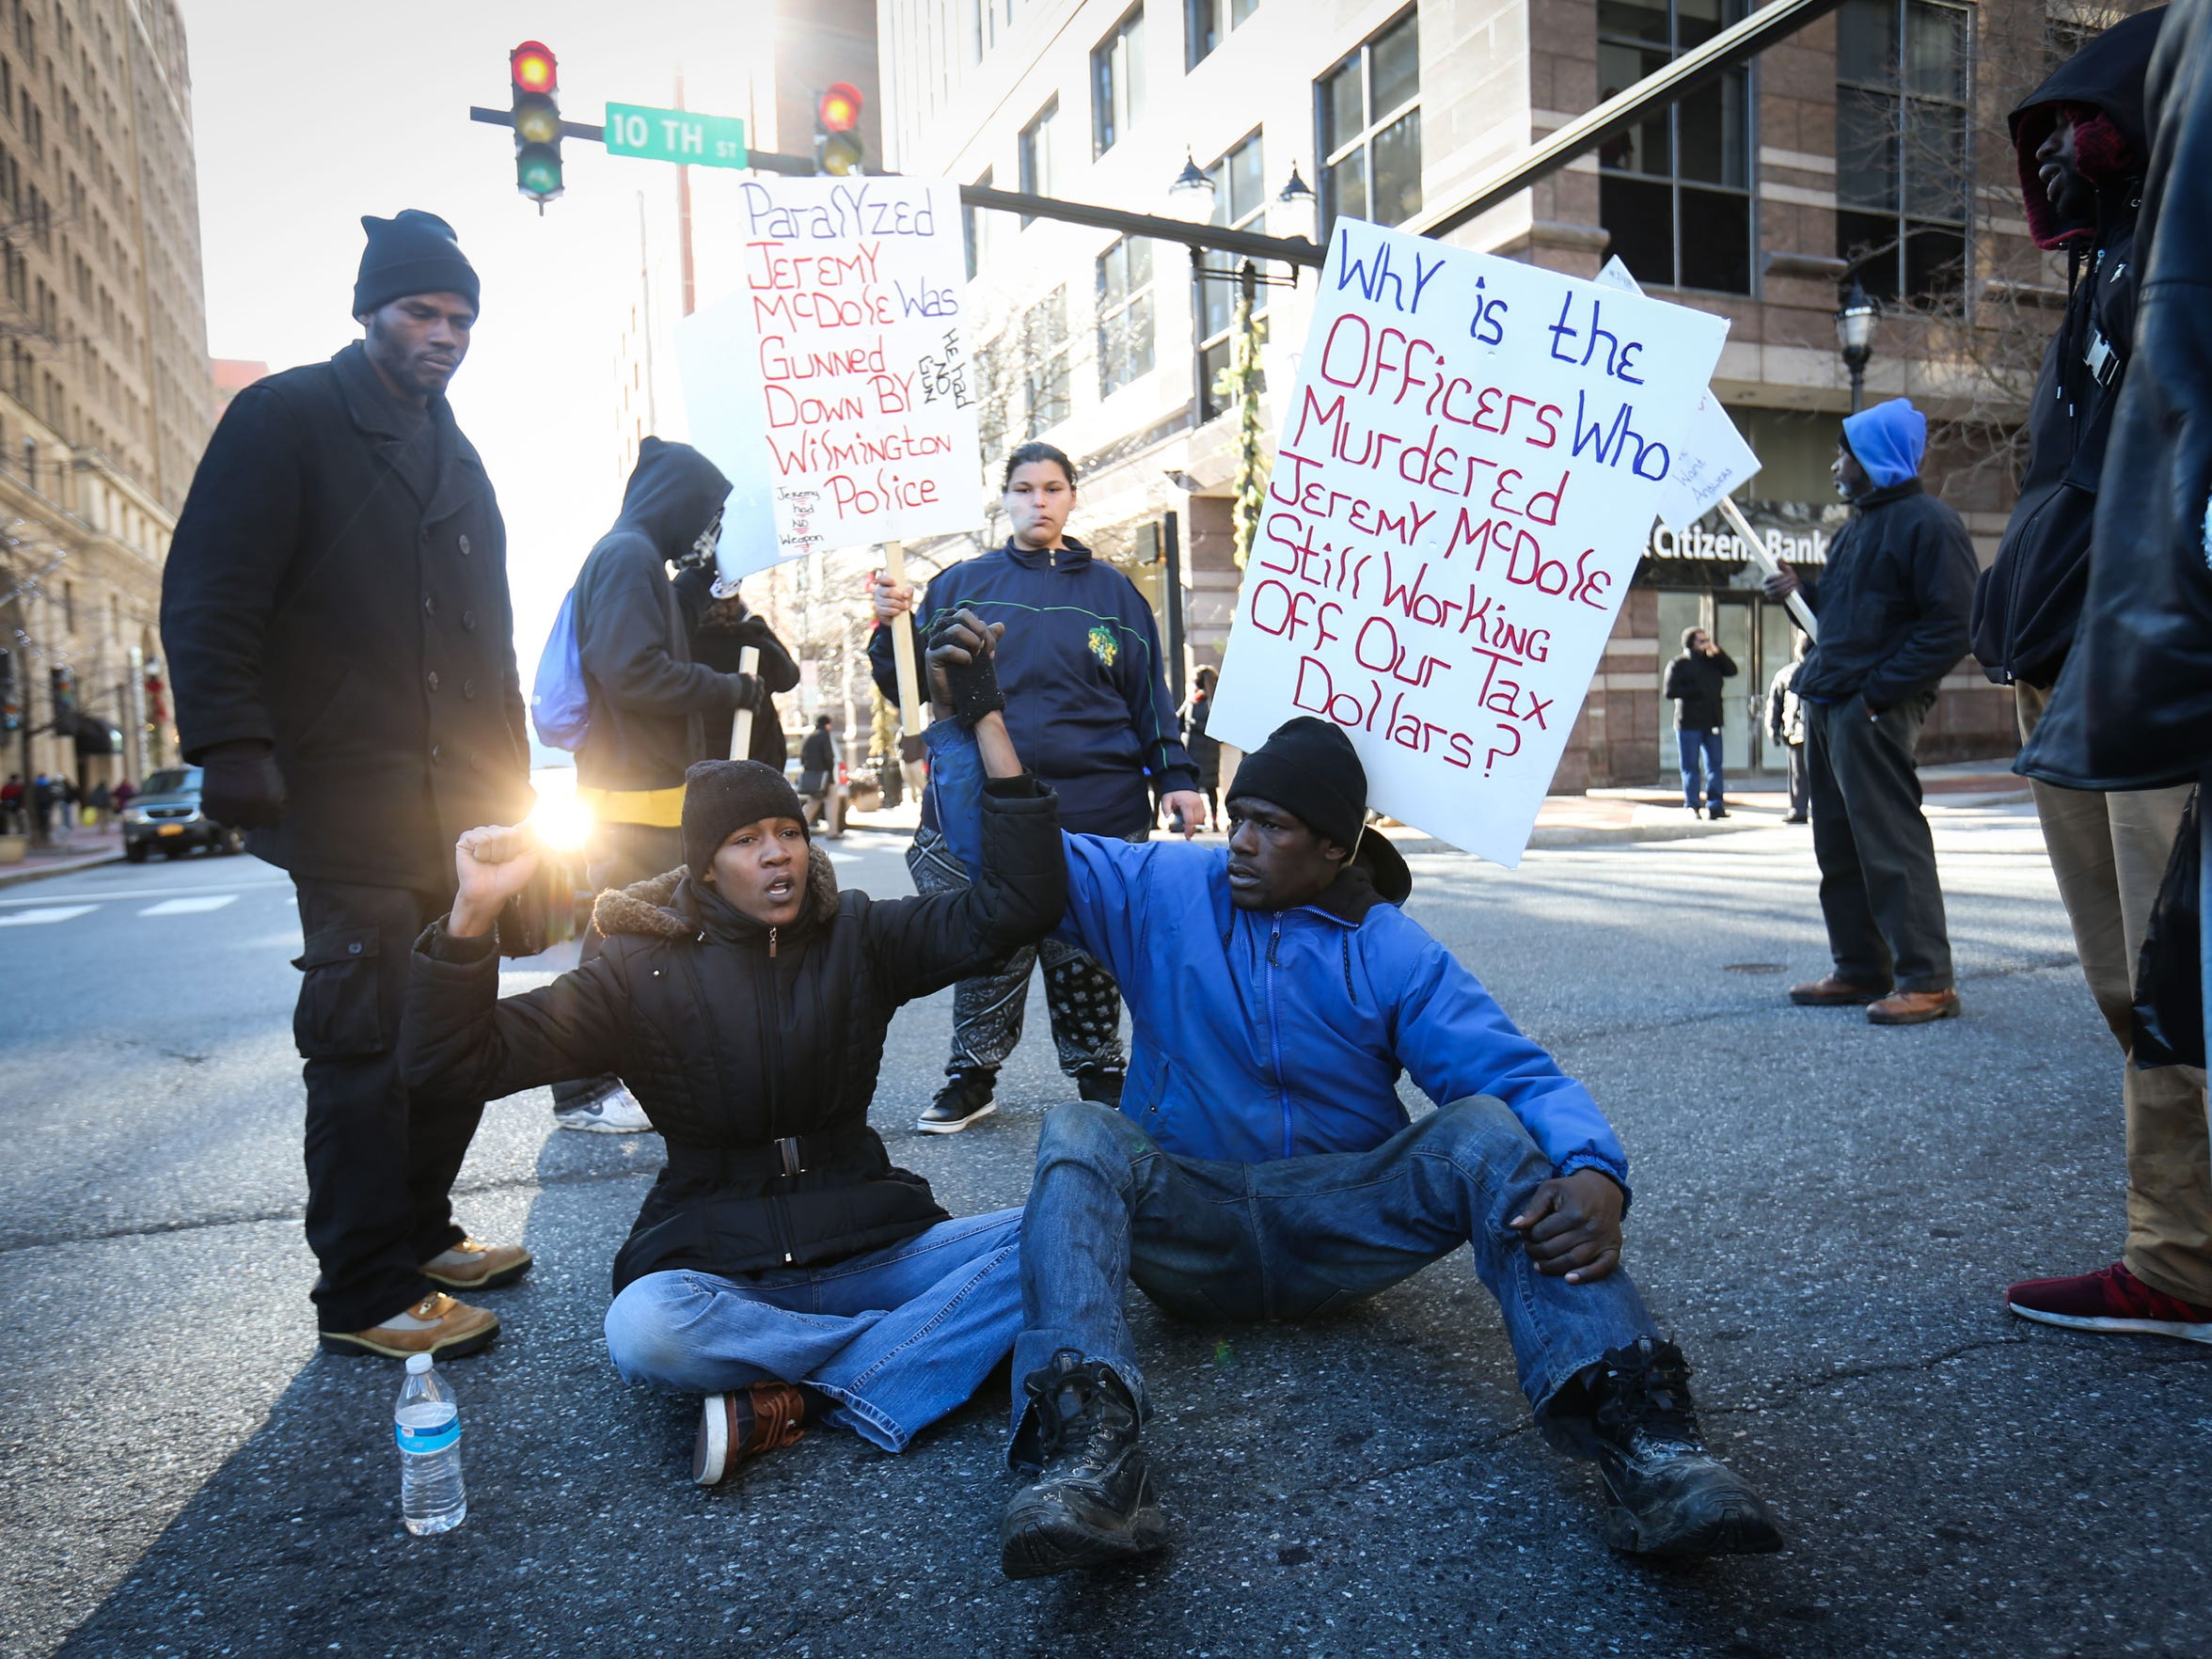 Keandra McDole and Robert Berry sit down at the intersection of Market and 10th streets in Wilmington during a protest in January.